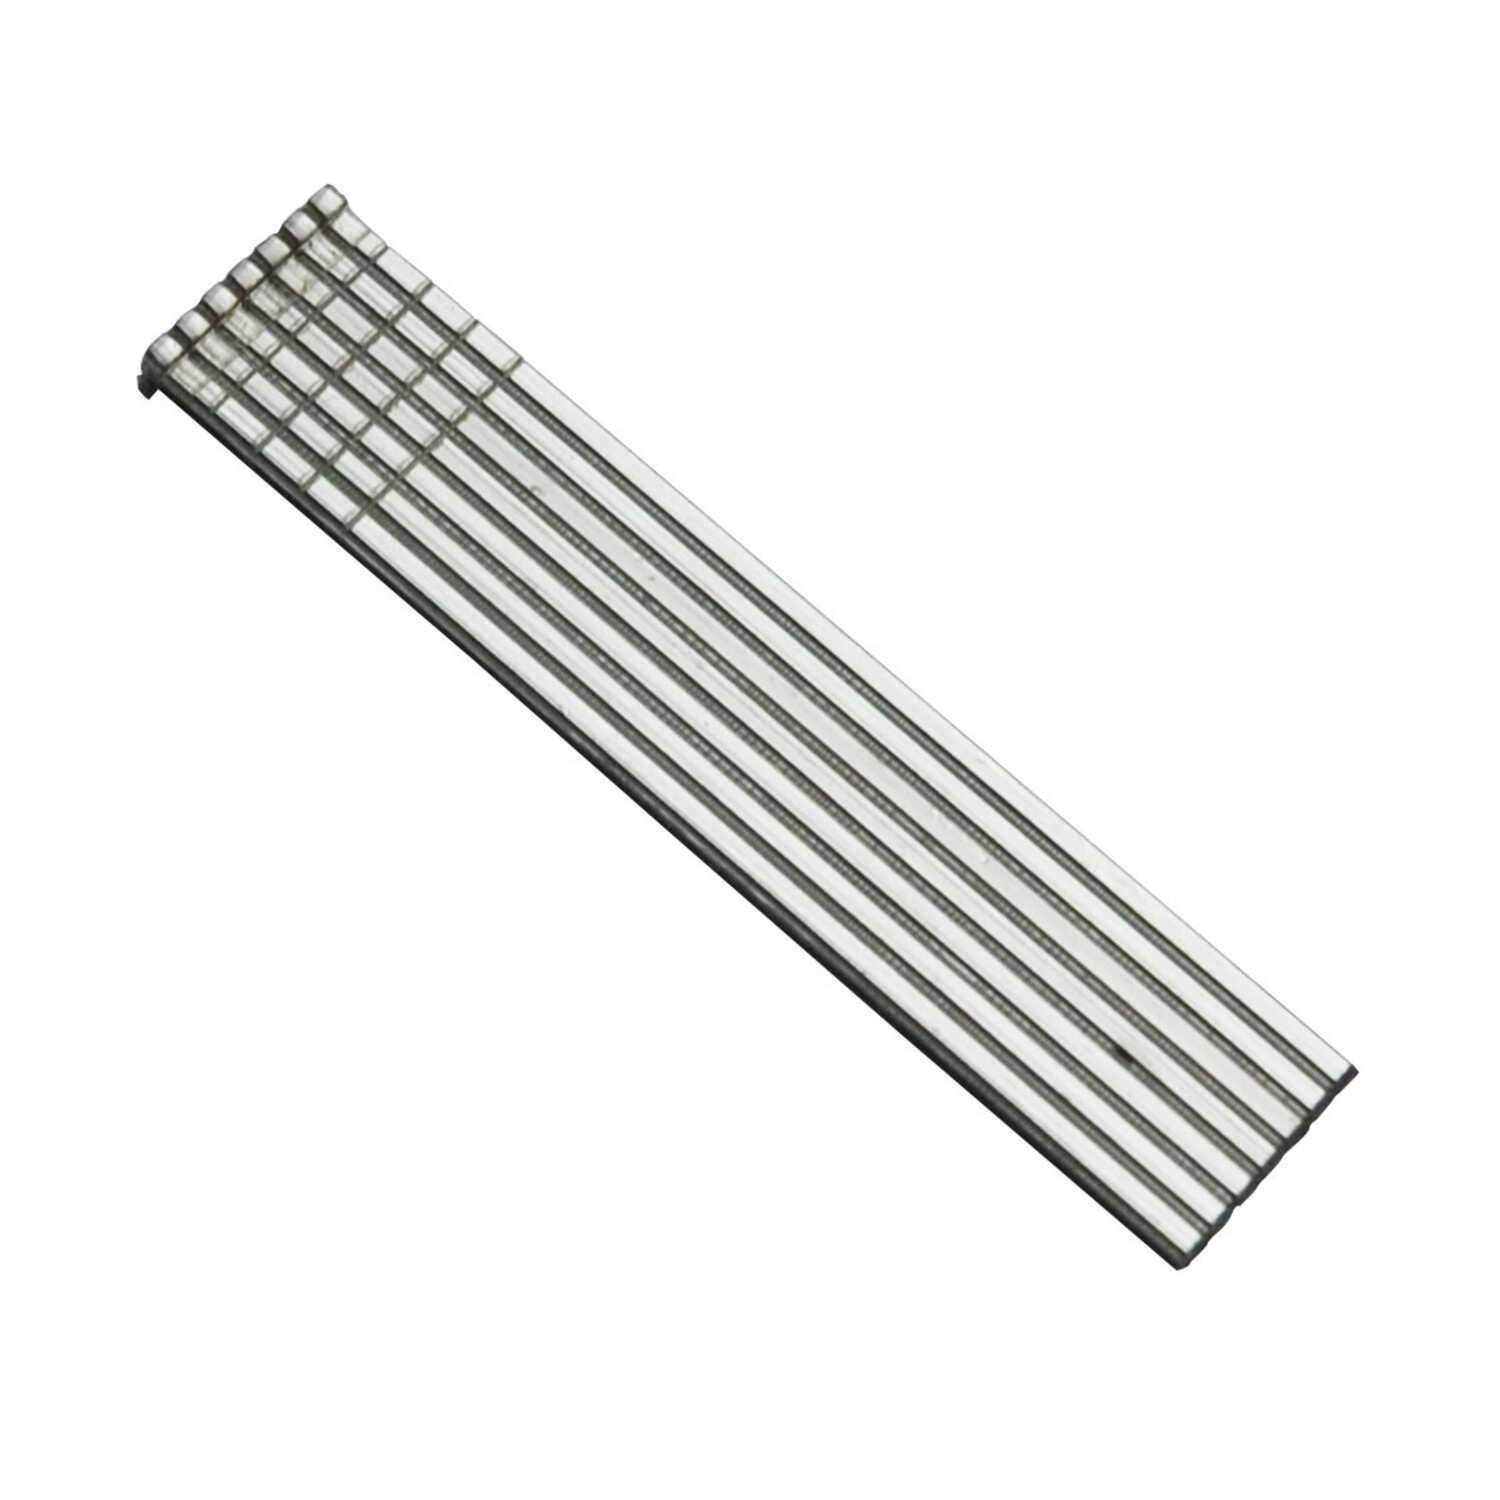 Grip-Rite  18 Ga. Smooth Shank  Straight Strip  Brad Nails  1-1/2 in. L x 0.05 in. Dia. 5000 count